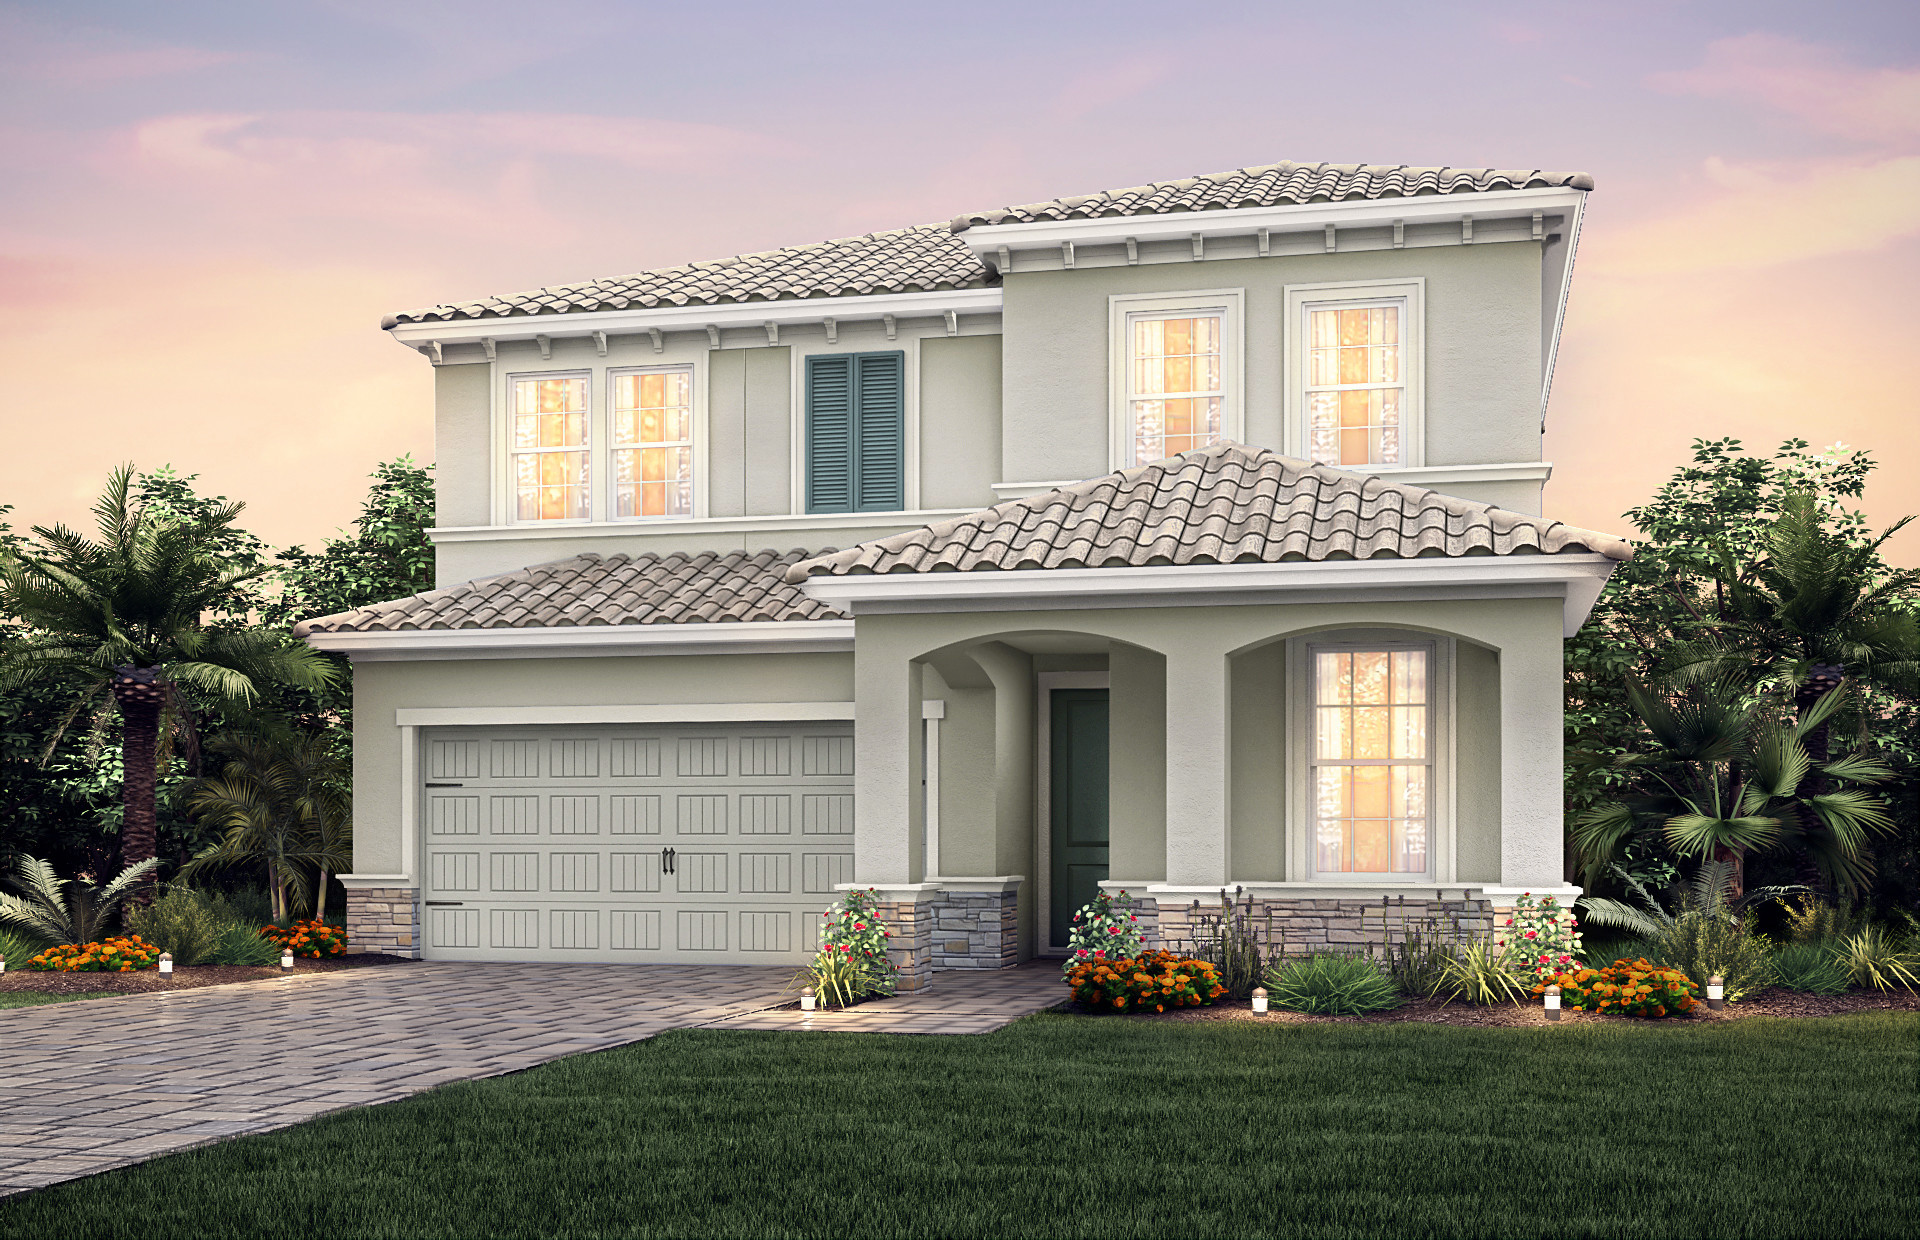 Pulte to discuss plans for 152 homes at woodmont country for Pulte home designs